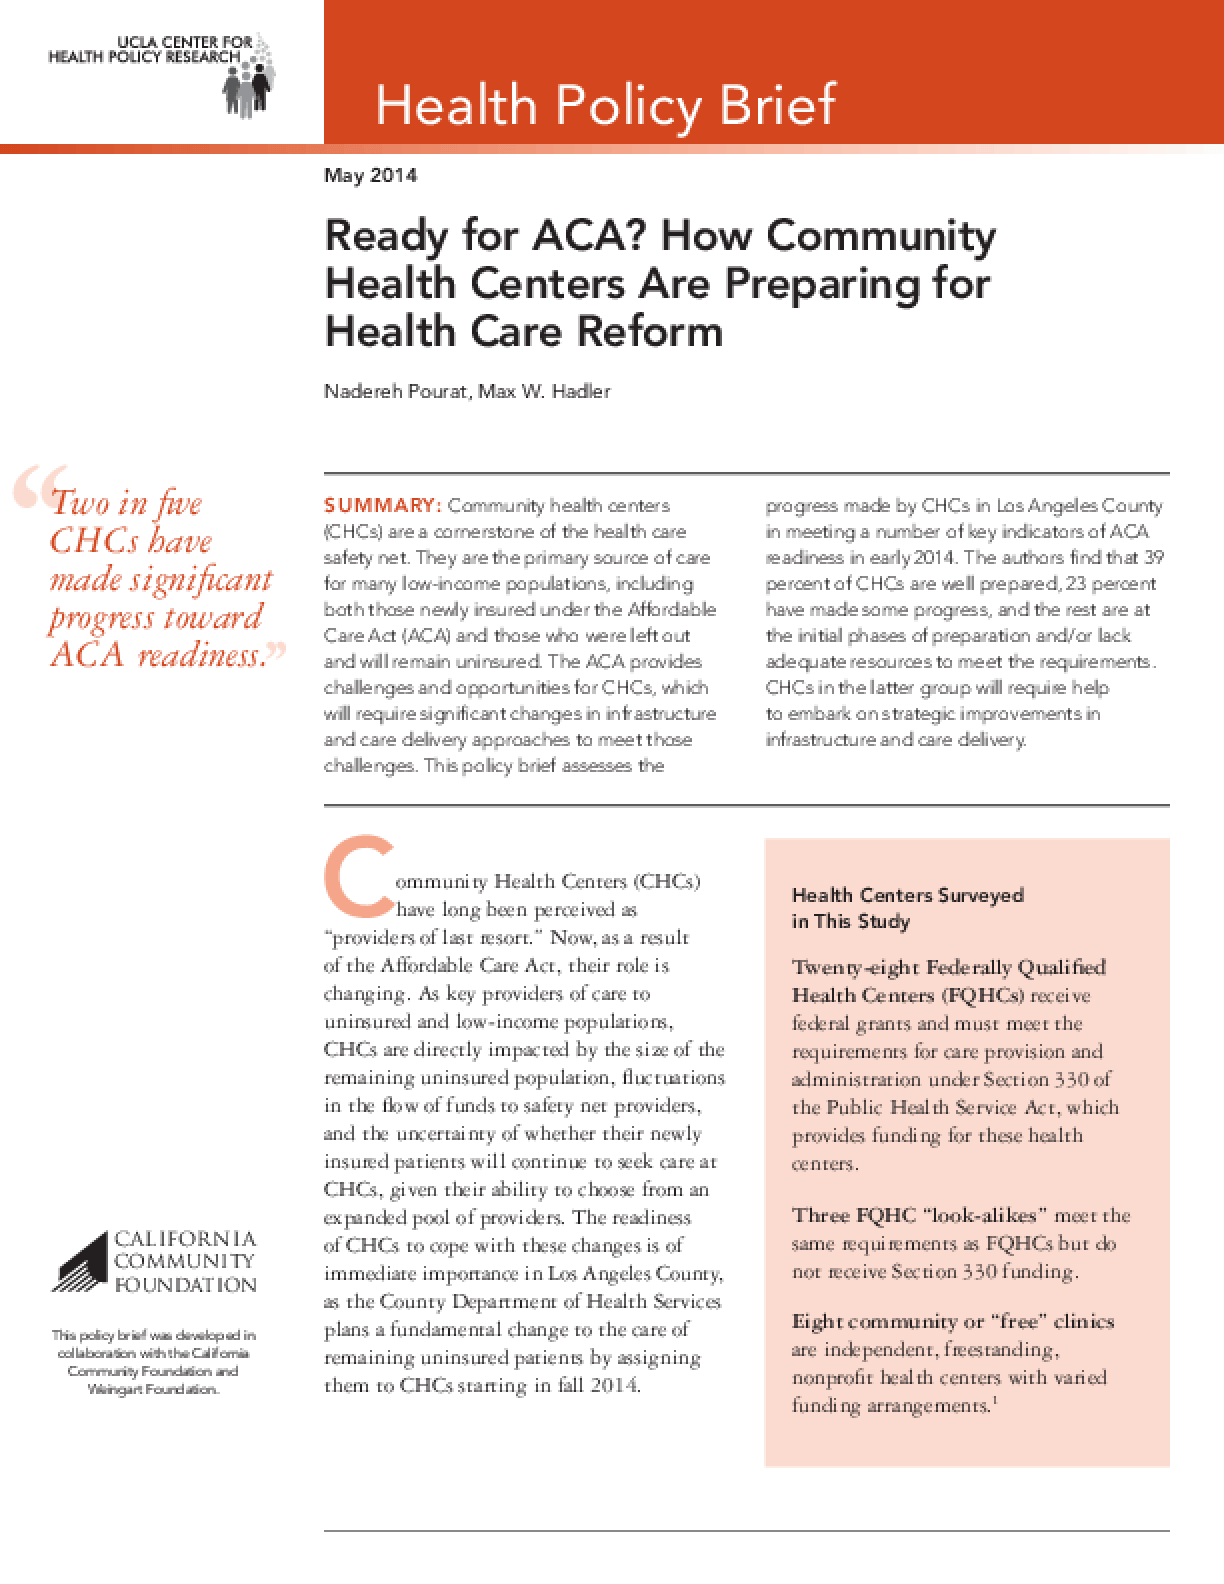 Ready for ACA? How Community Health Centers Are Preparing for Health Care Reform